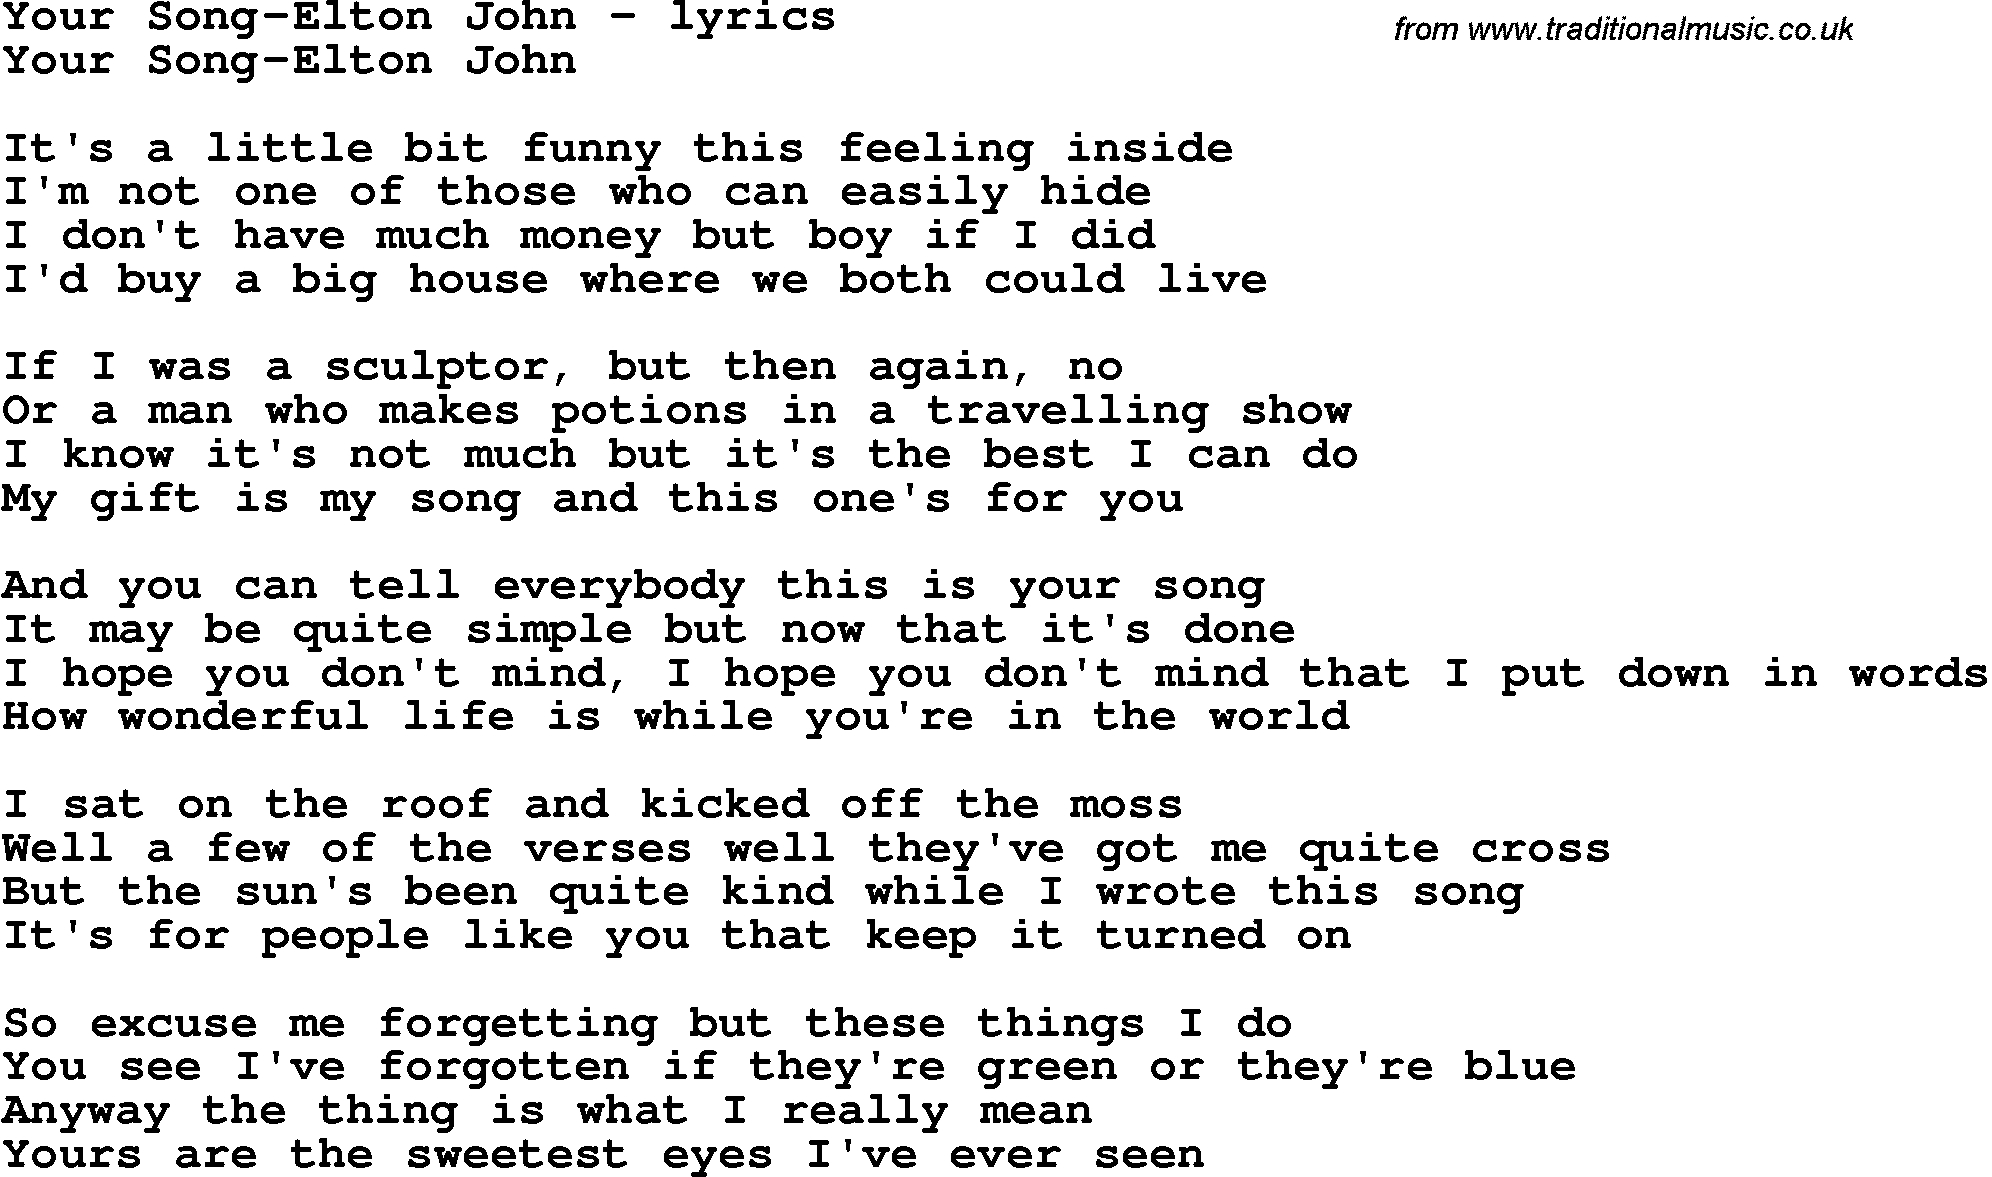 Love Song Lyrics For:your Song-Elton John - Free Printable Song Lyrics